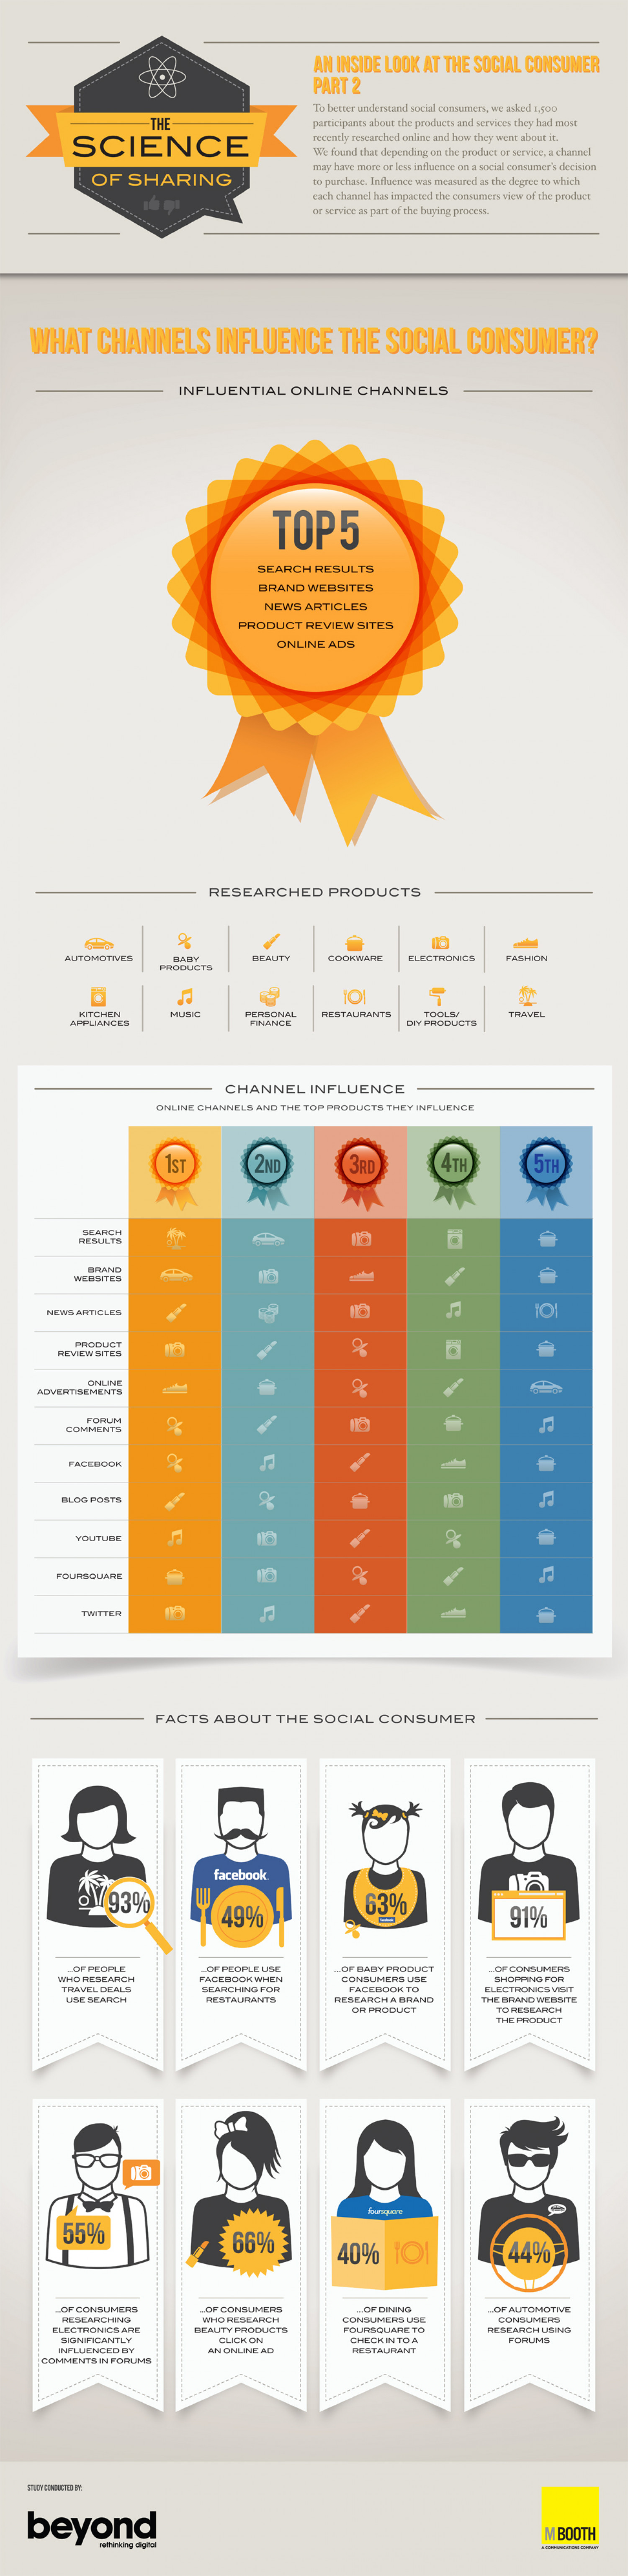 The Science of Sharing Infographic